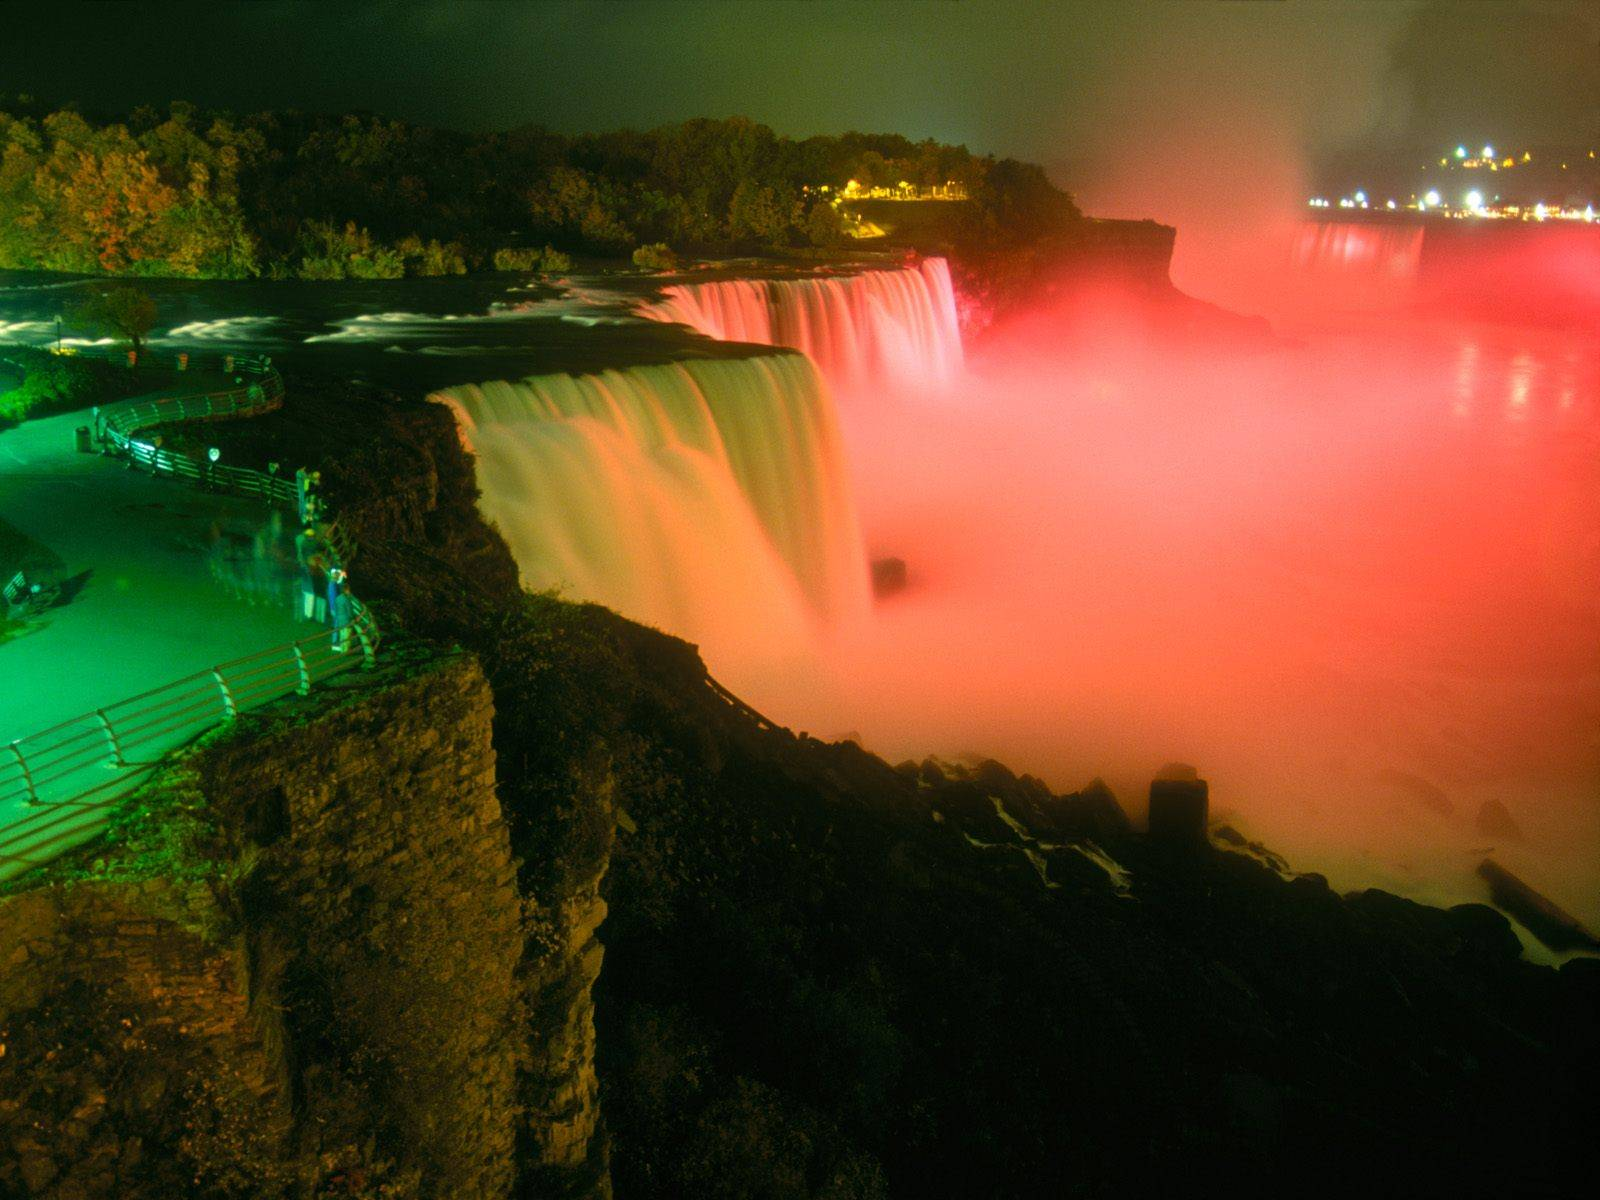 Niagara-Falls-at-Night-Romantic-view-2012-2013